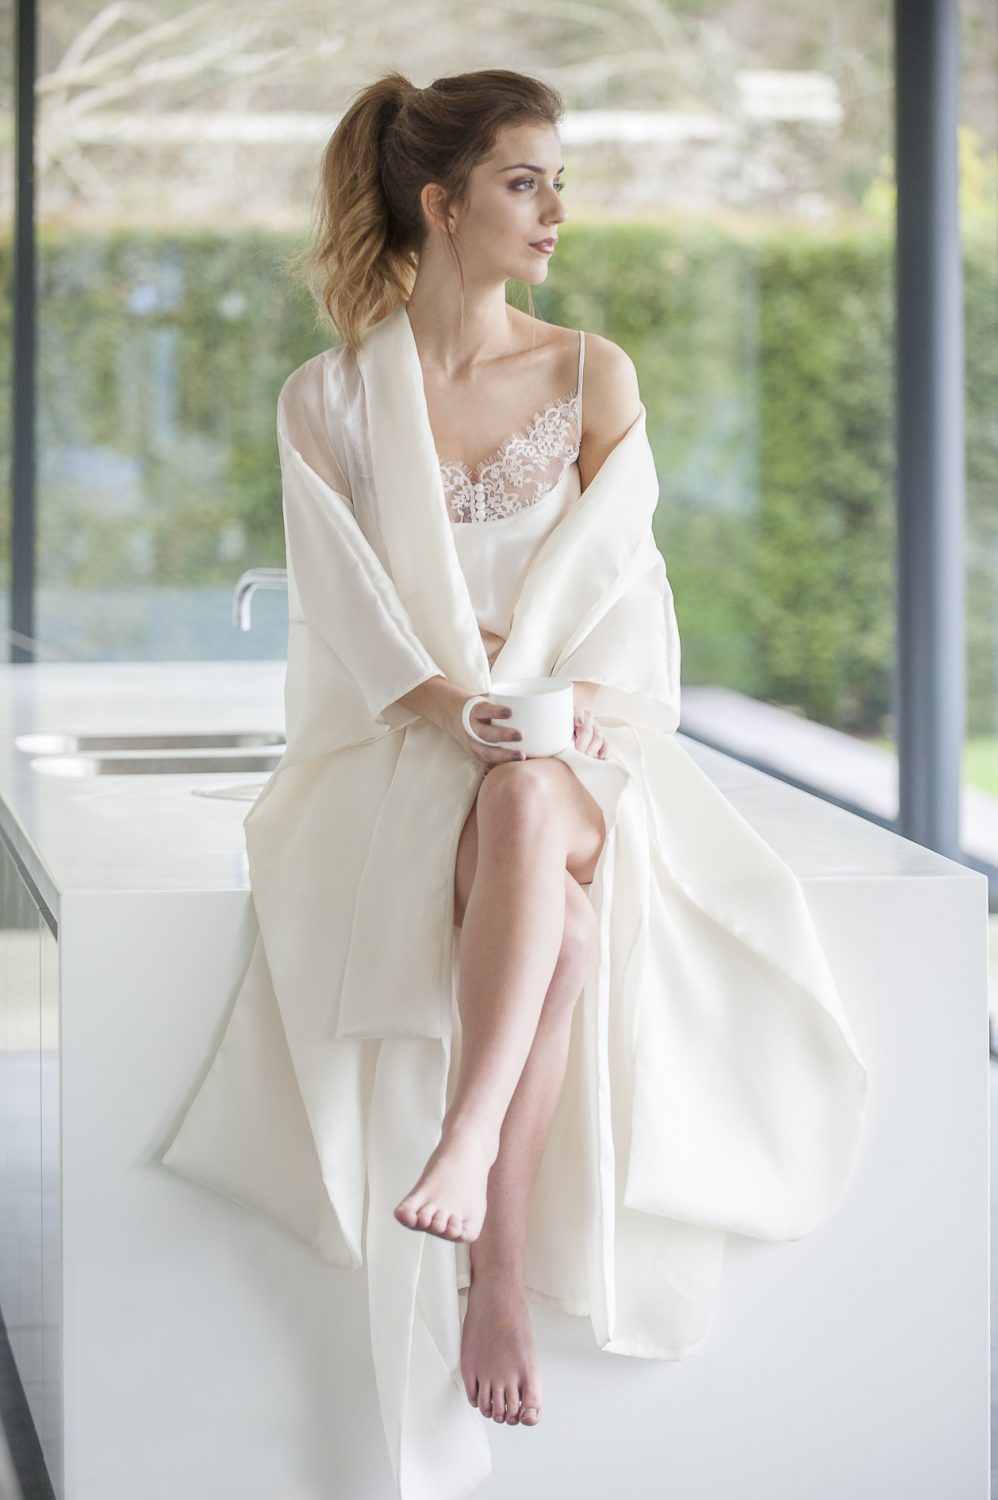 Silk cami, from £120, silk kimono, from £180, The Robing Room, Ashford 01233 224985 therobingroom.co.uk